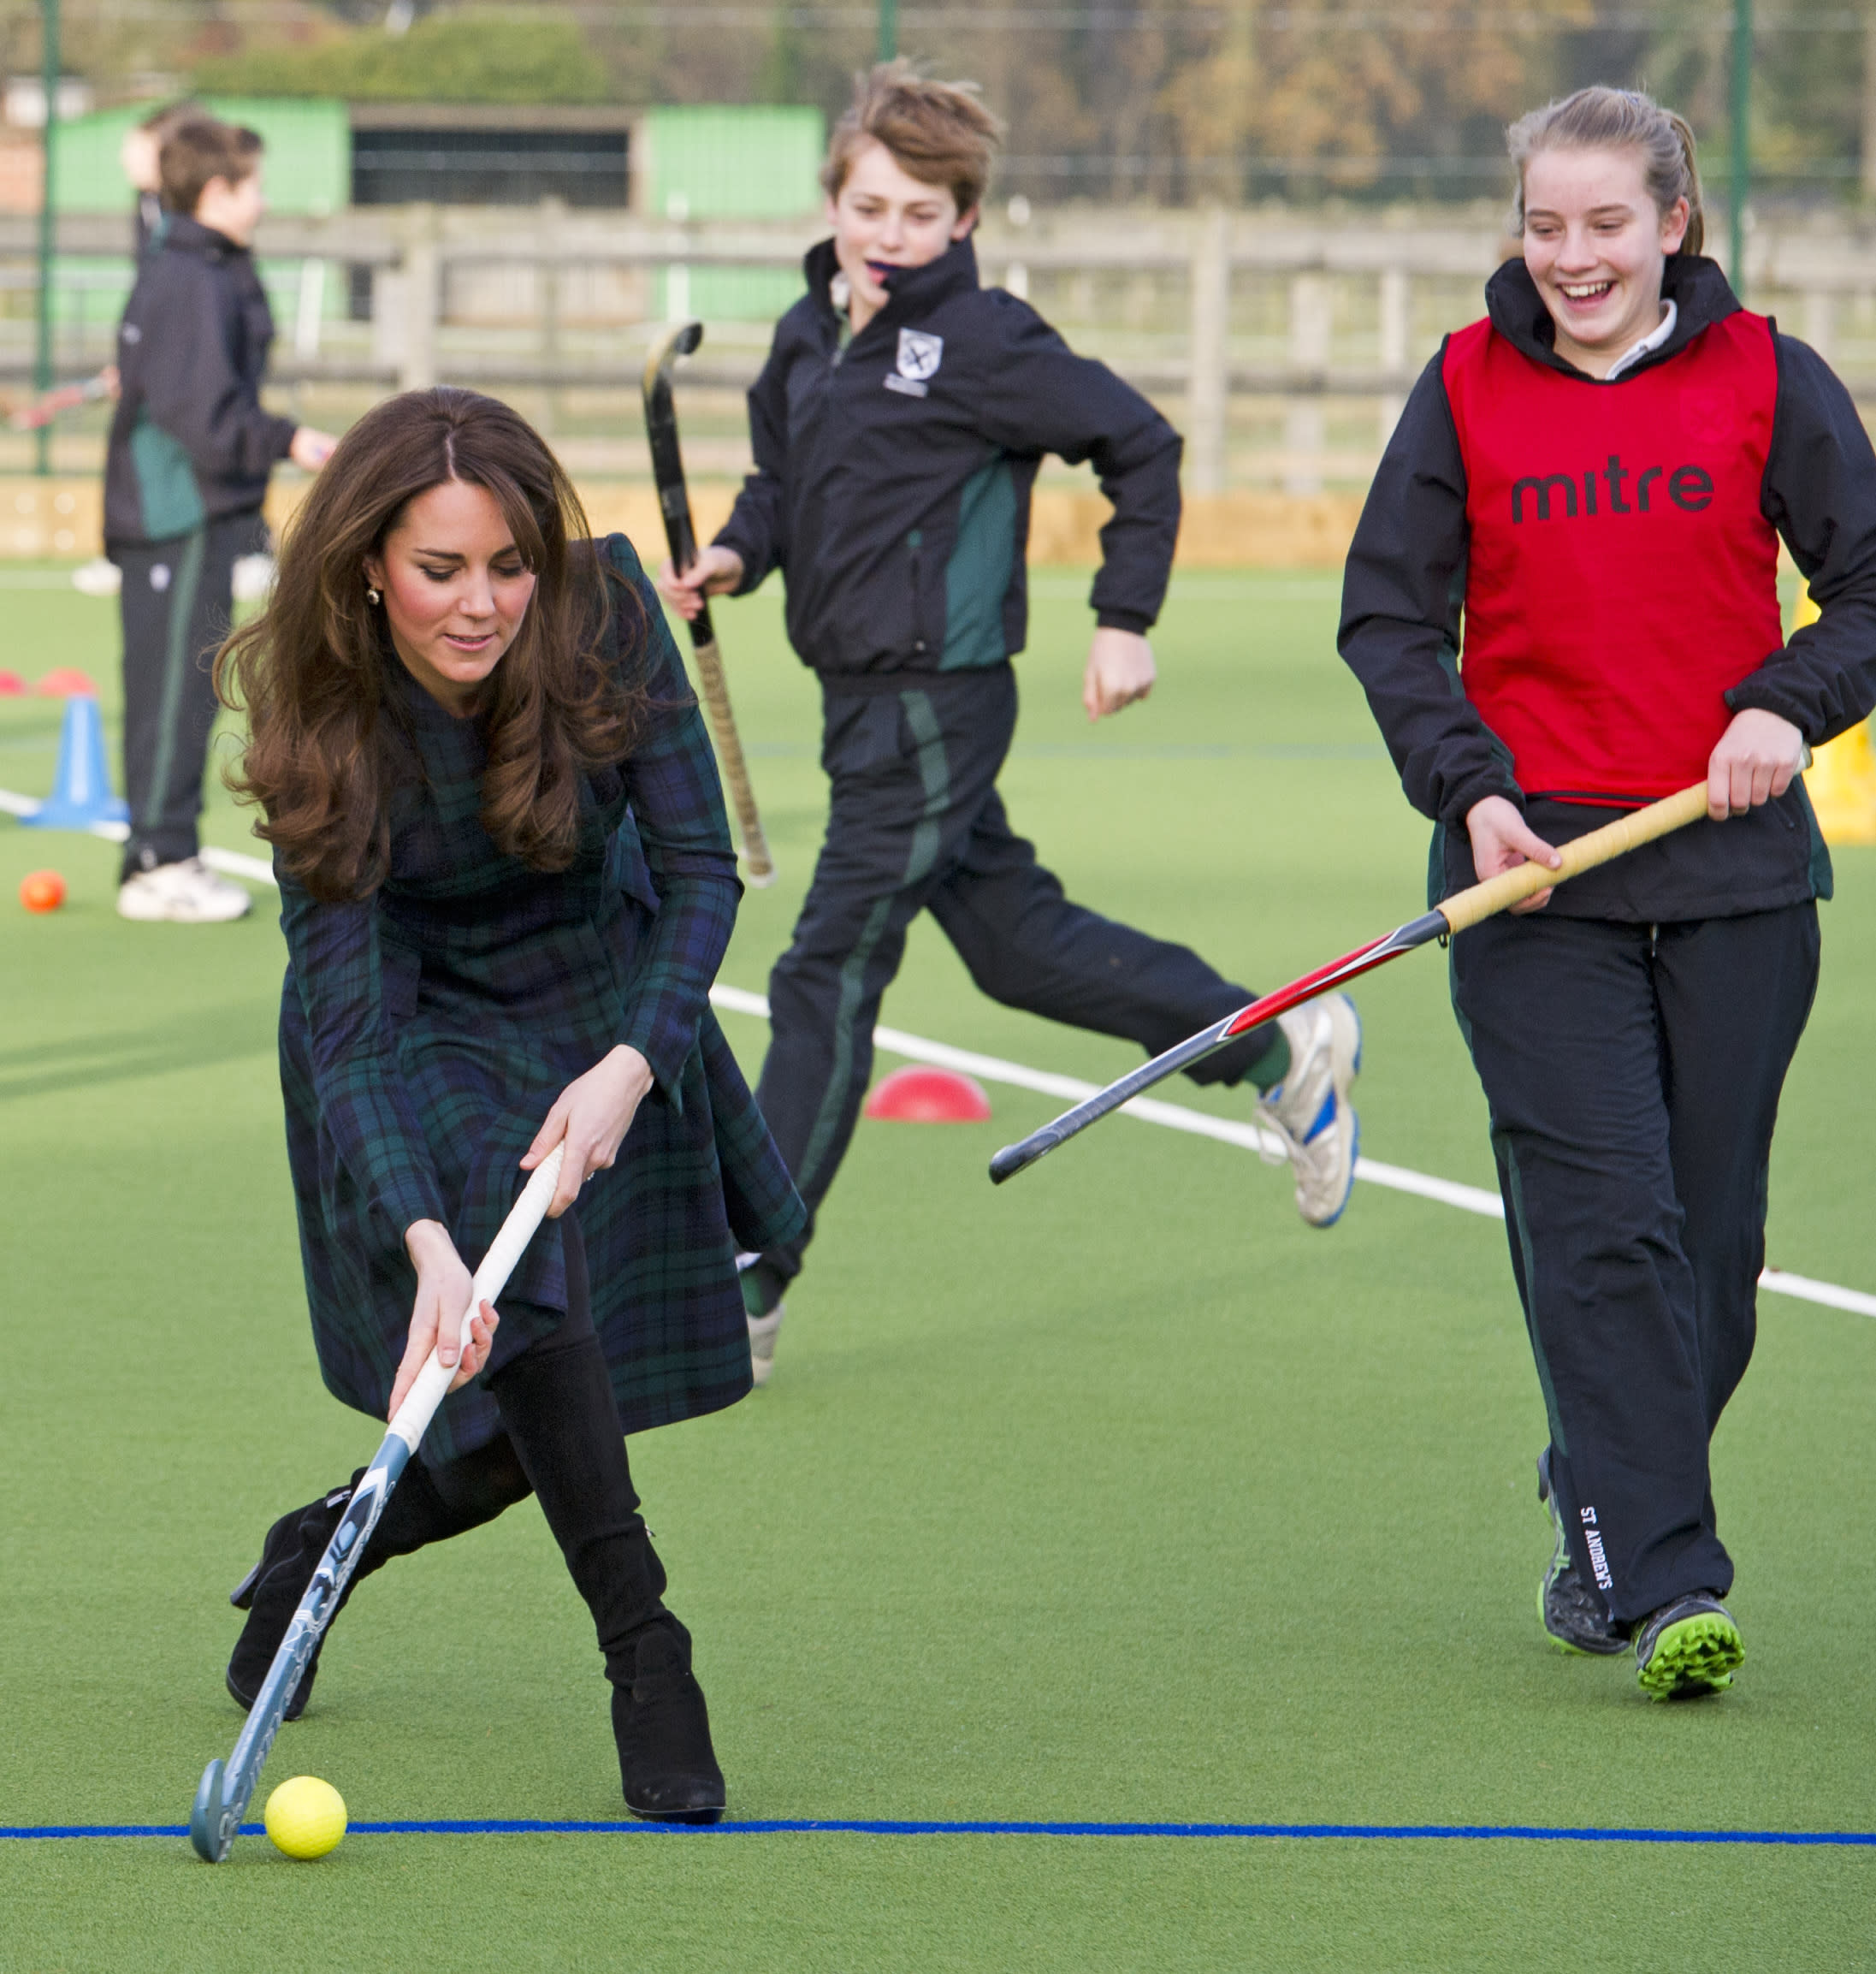 """Kate, the Duchess of Cambridge, left, plays hockey during her visit to St. Andrew's School, where she attended school from 1986 till 1995, in Pangbourne, England, Friday, Nov. 30, 2012. The Duchess of Cambridge has gone back to school. The royal, formerly known as Kate Middleton, played hockey and revealed her childhood nickname — Squeak — when she returned to her elementary school for a visit Friday. Kate told teachers and students at the private St. Andrew's School in southern England that her 10 years there were """"some of my happiest years."""" She said that she enjoyed it so much that she had told her mother she wanted to return as a teacher. (AP Photo/Arthur Edwards, Pool)"""